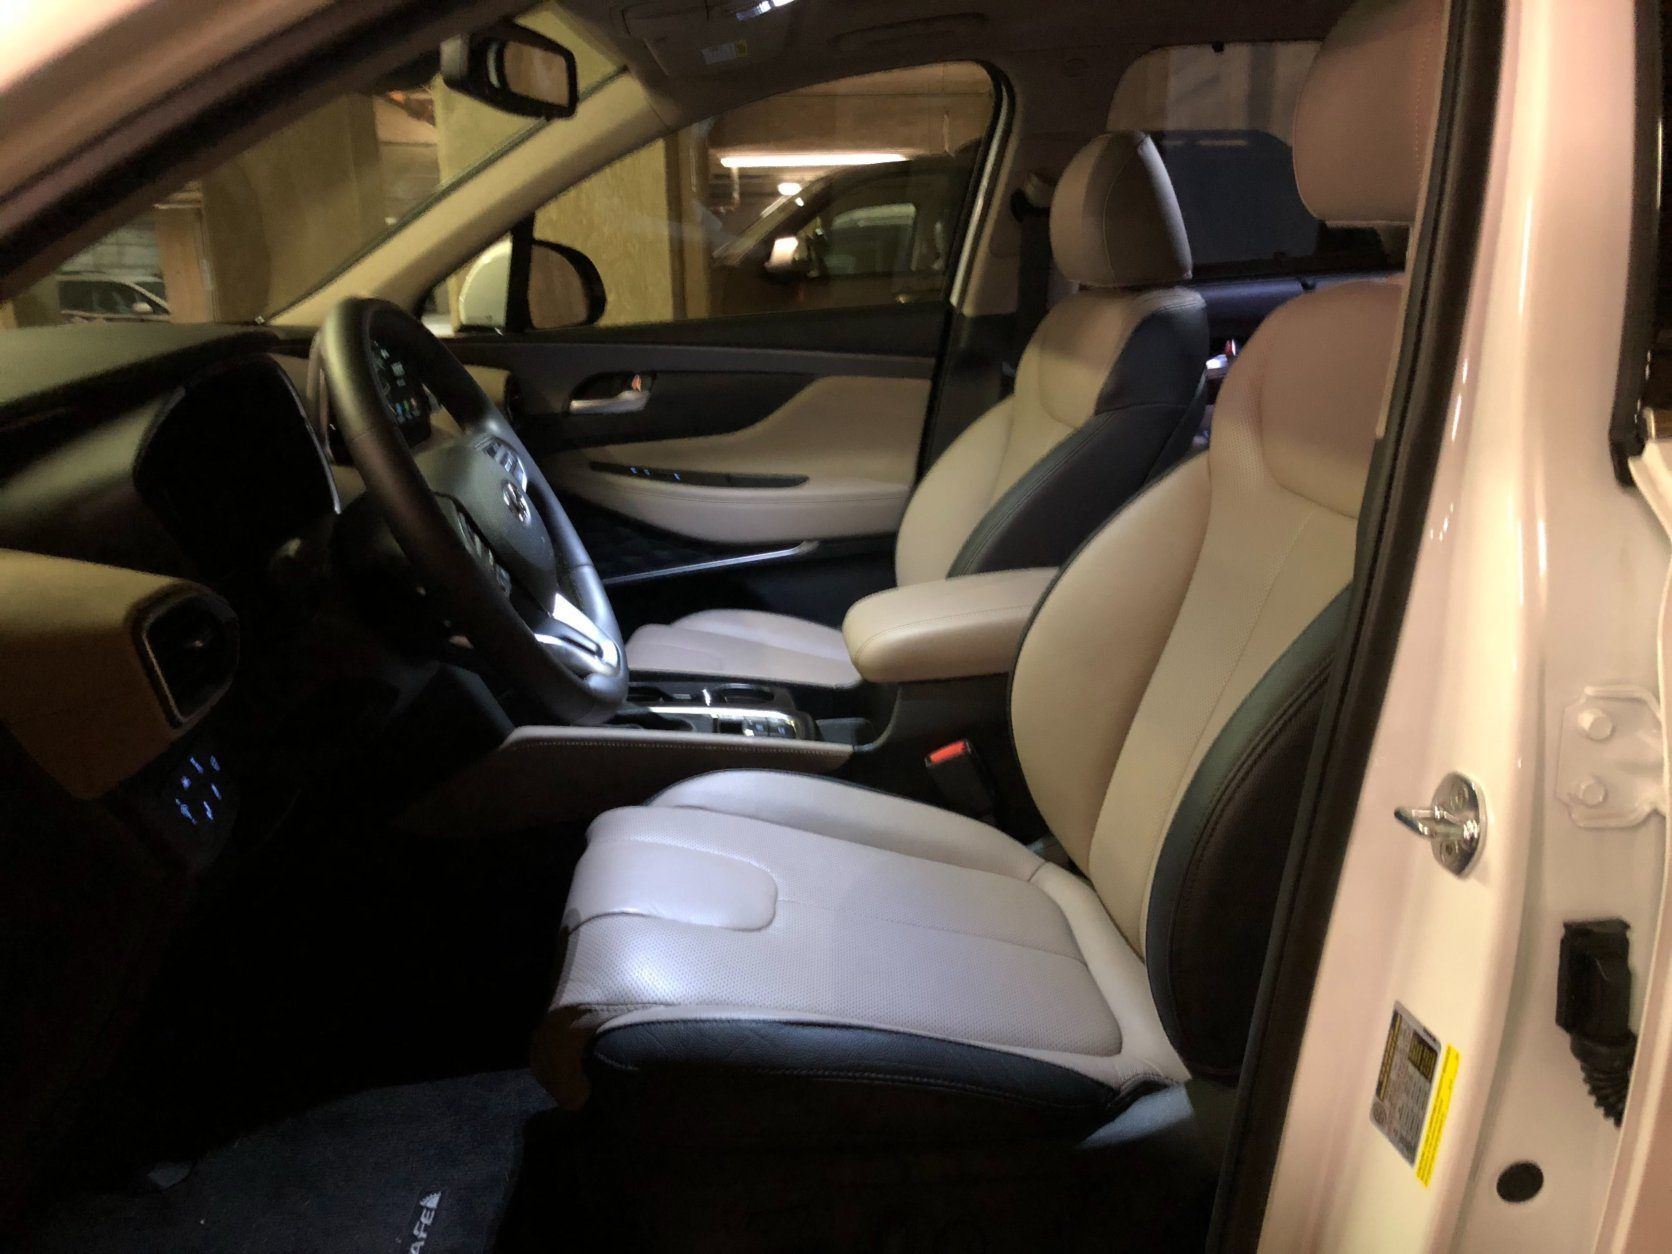 <p>The leather covered, heated and ventilated seats are comfortable with plenty of power adjustments to get that perfect position.</p> <p>Now that this 2019 Santa Fe is just a two-row crossover, the luggage space should please most buyers. Interior materials are upgraded with more soft touch and richer looking plastics, vinyl and leather.</p> <p>The cabin has benefited from the use of more sound deadening and its road and wind noise has been greatly reduced from the previous Santa Fe.</p>